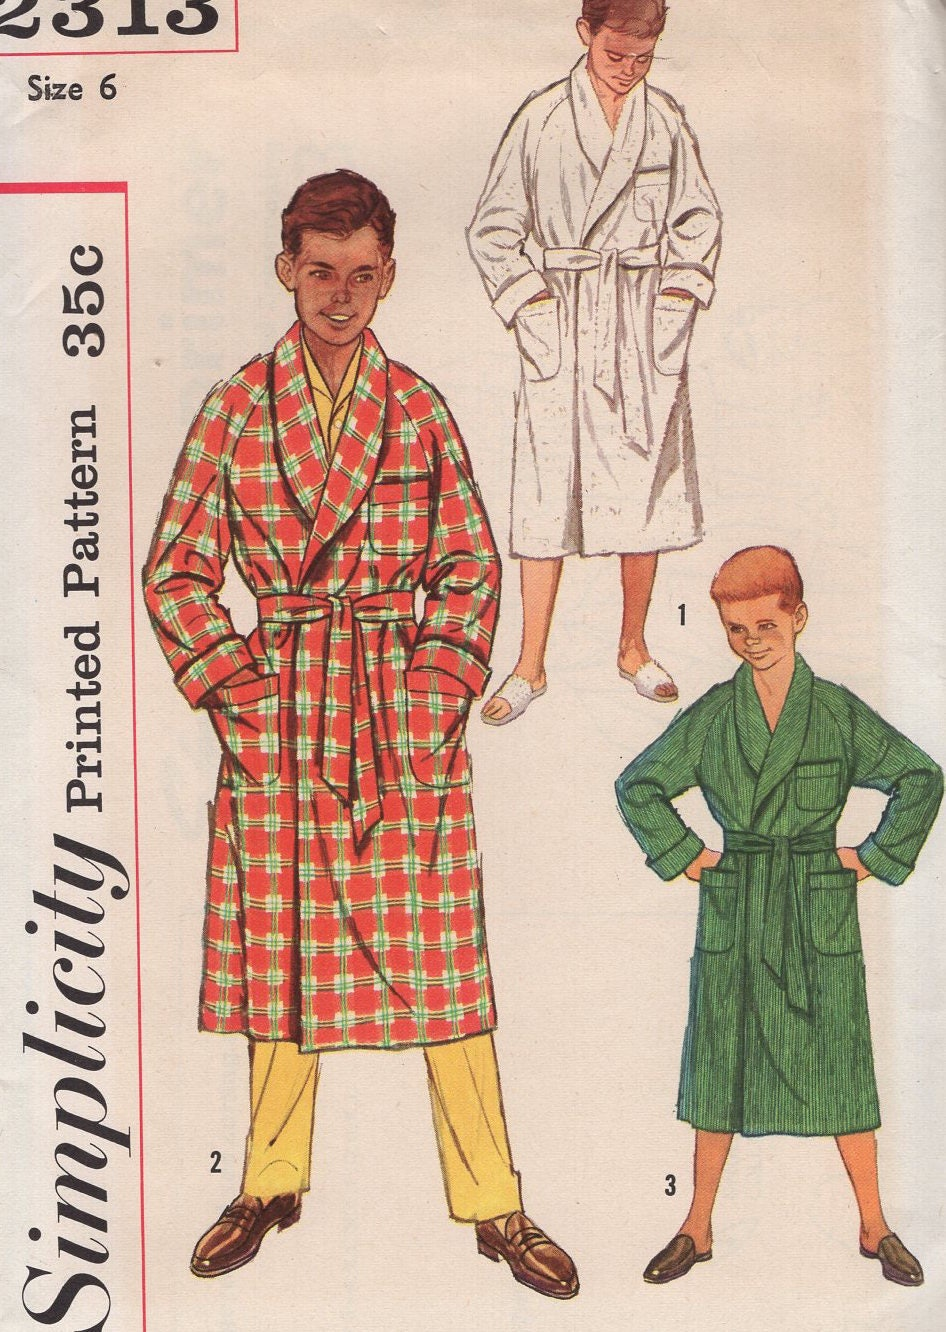 Free us ship vintage retro 1950s 50s sewing pattern simplicity free us ship vintage retro 1950s 50s sewing pattern simplicity 2313 boys raglan sleeve terry cloth wrap bath robe uncut size 6 chest 24 jeuxipadfo Gallery